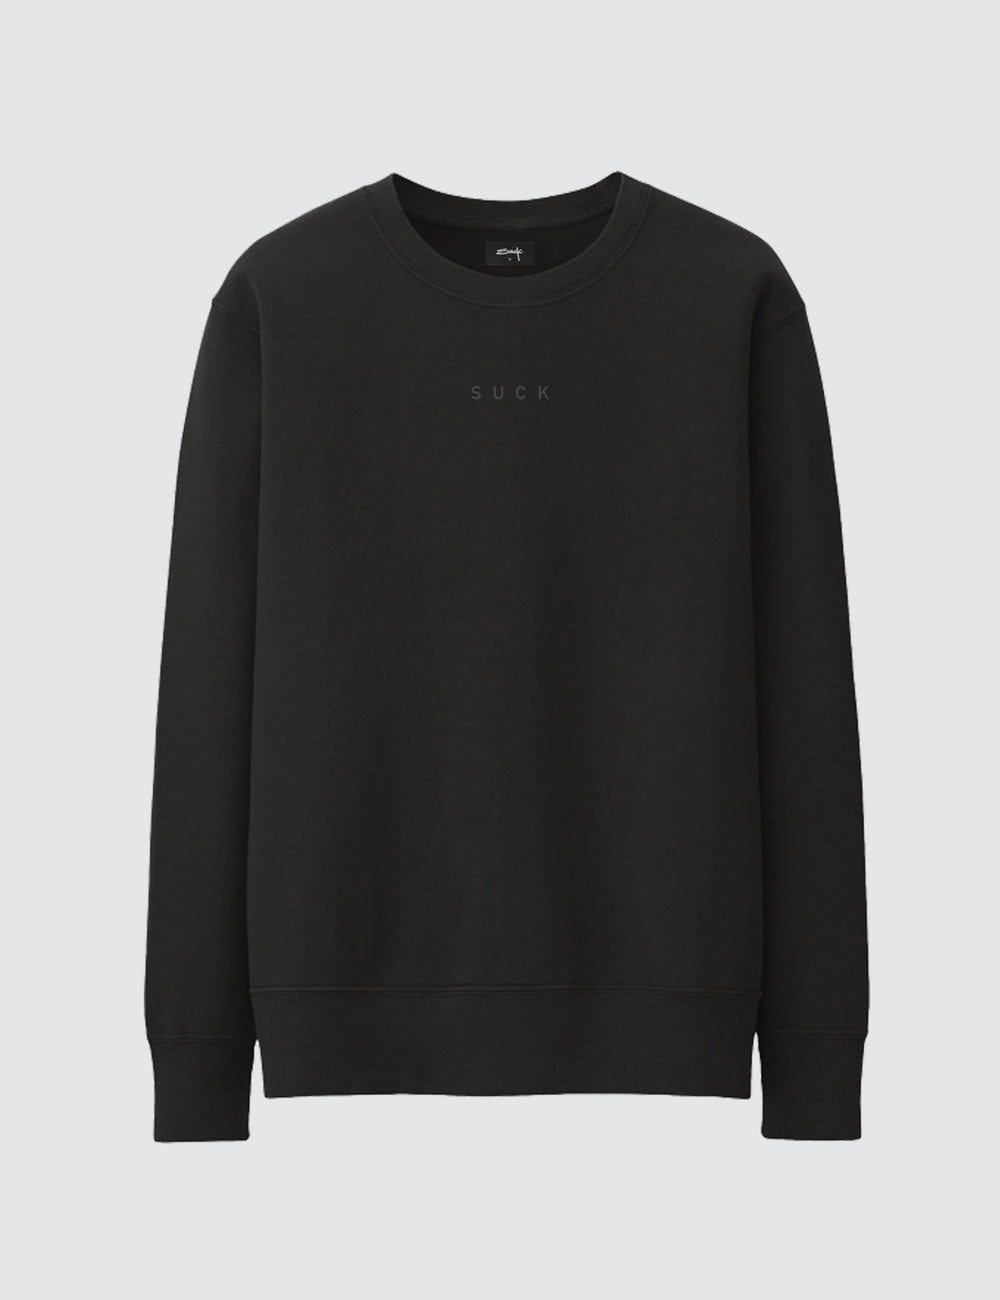 LADY SMOKER CREWNECK - SUCK